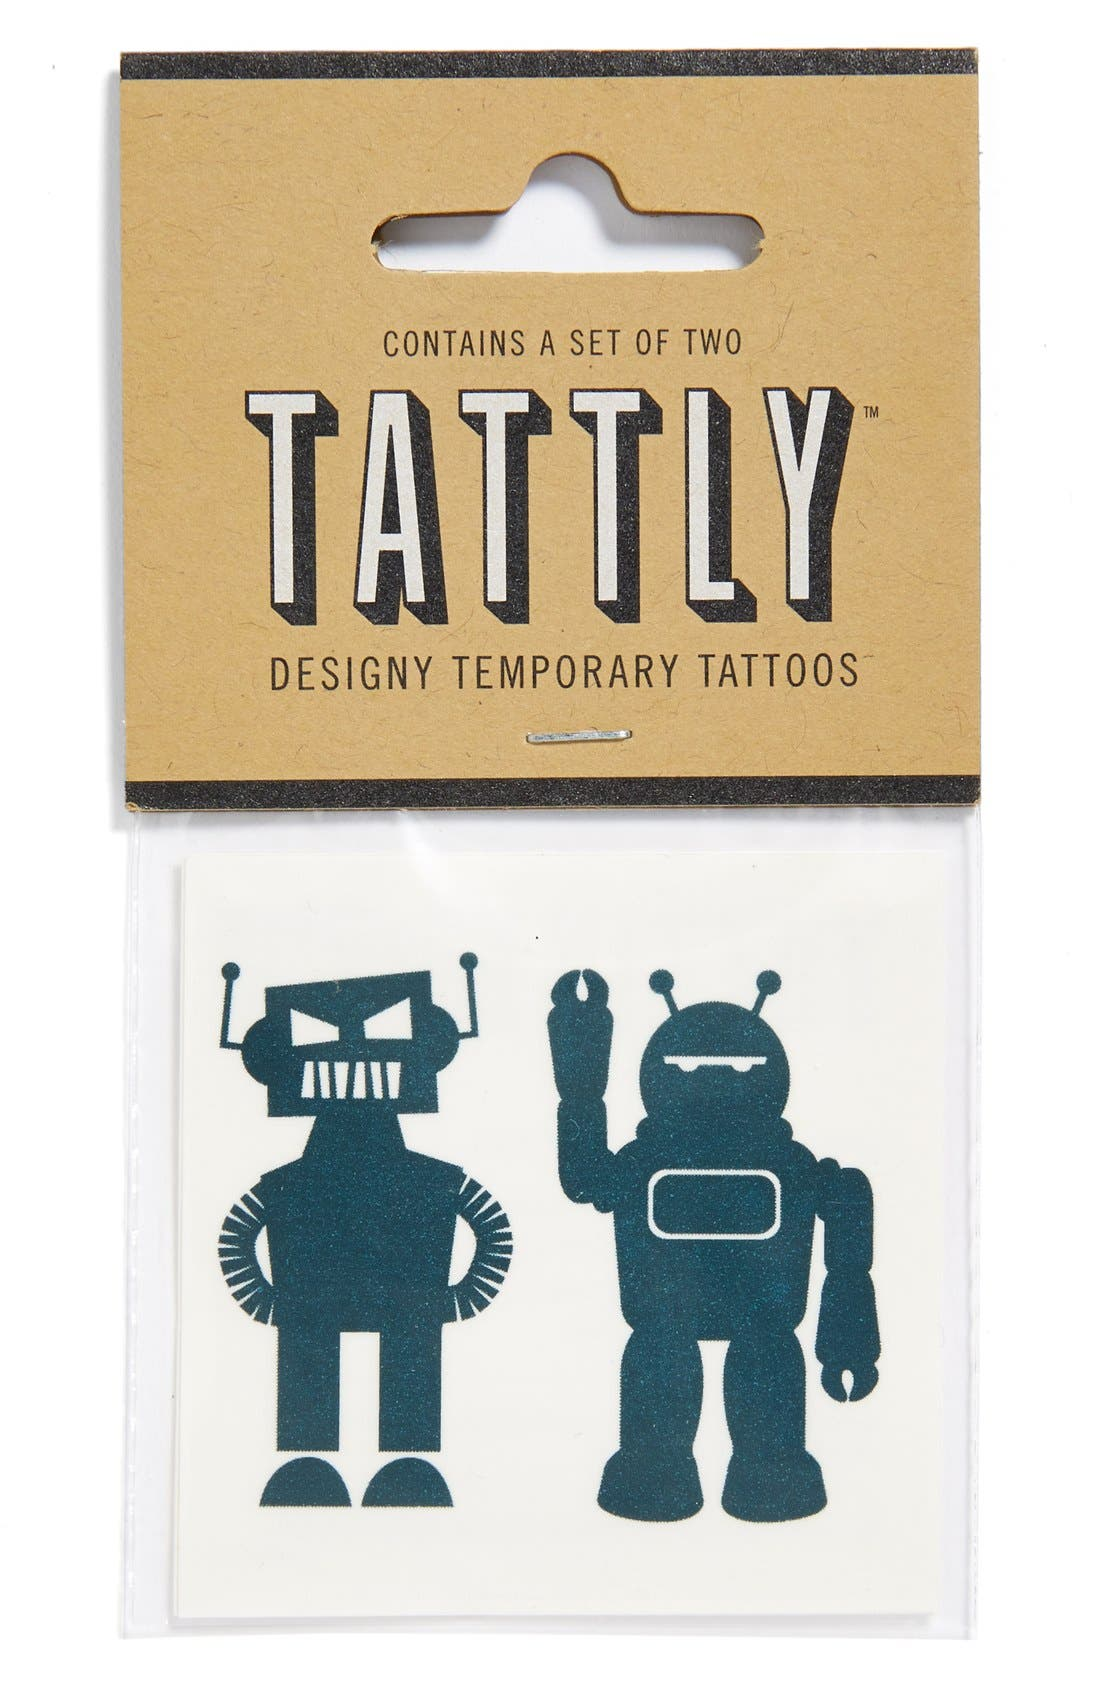 Alternate Image 1 Selected - Tattly Temporary Tattoo